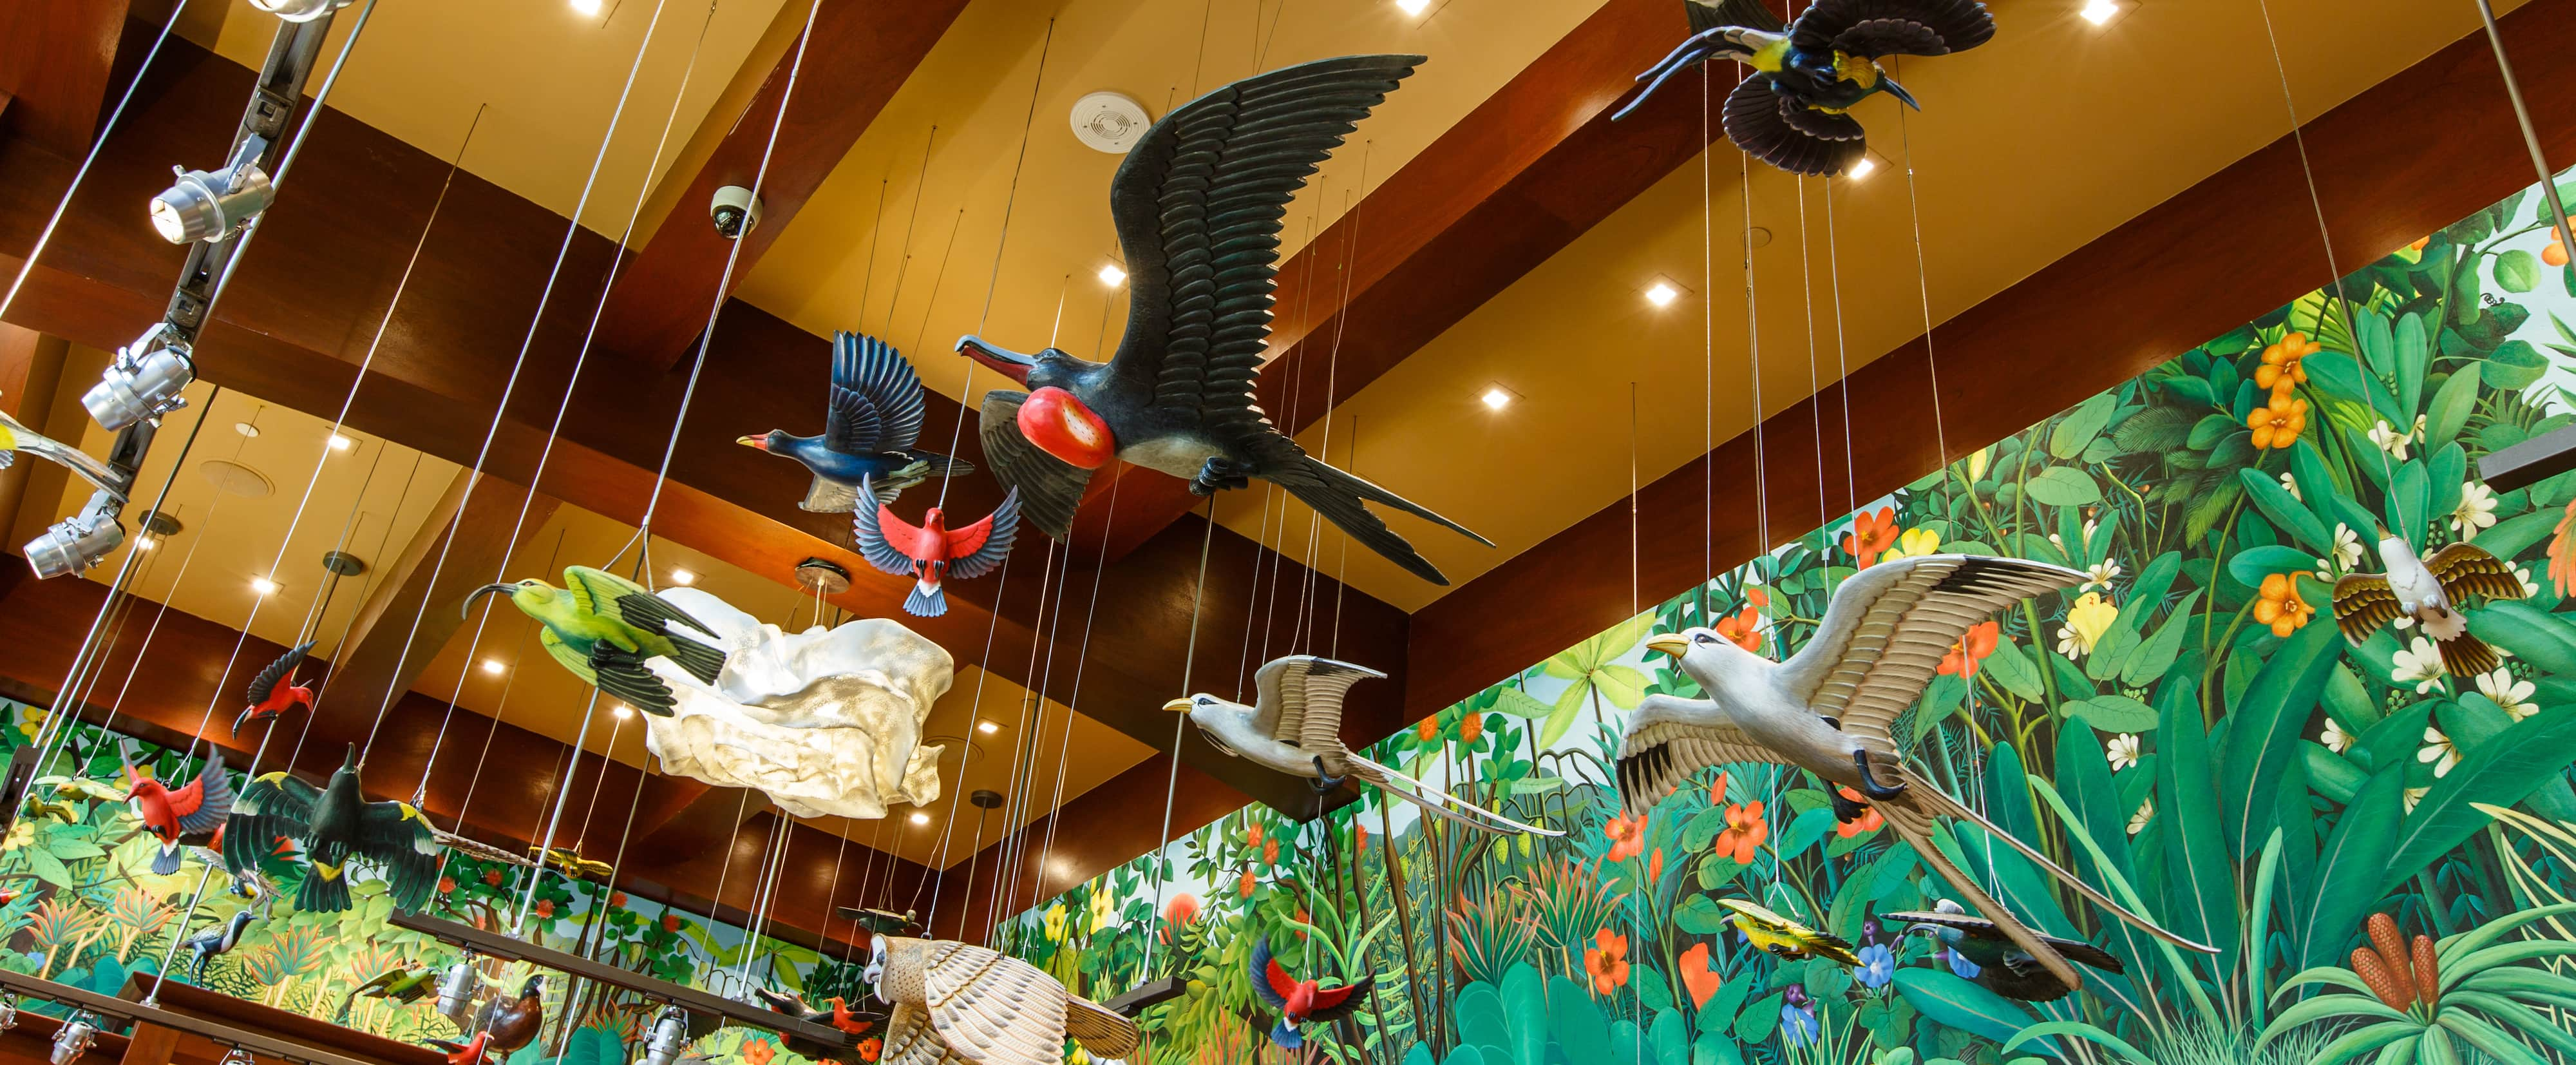 Life-sized wooden birds on strings hang from a wood-beamed ceiling bordered by a mural of tropical foliage